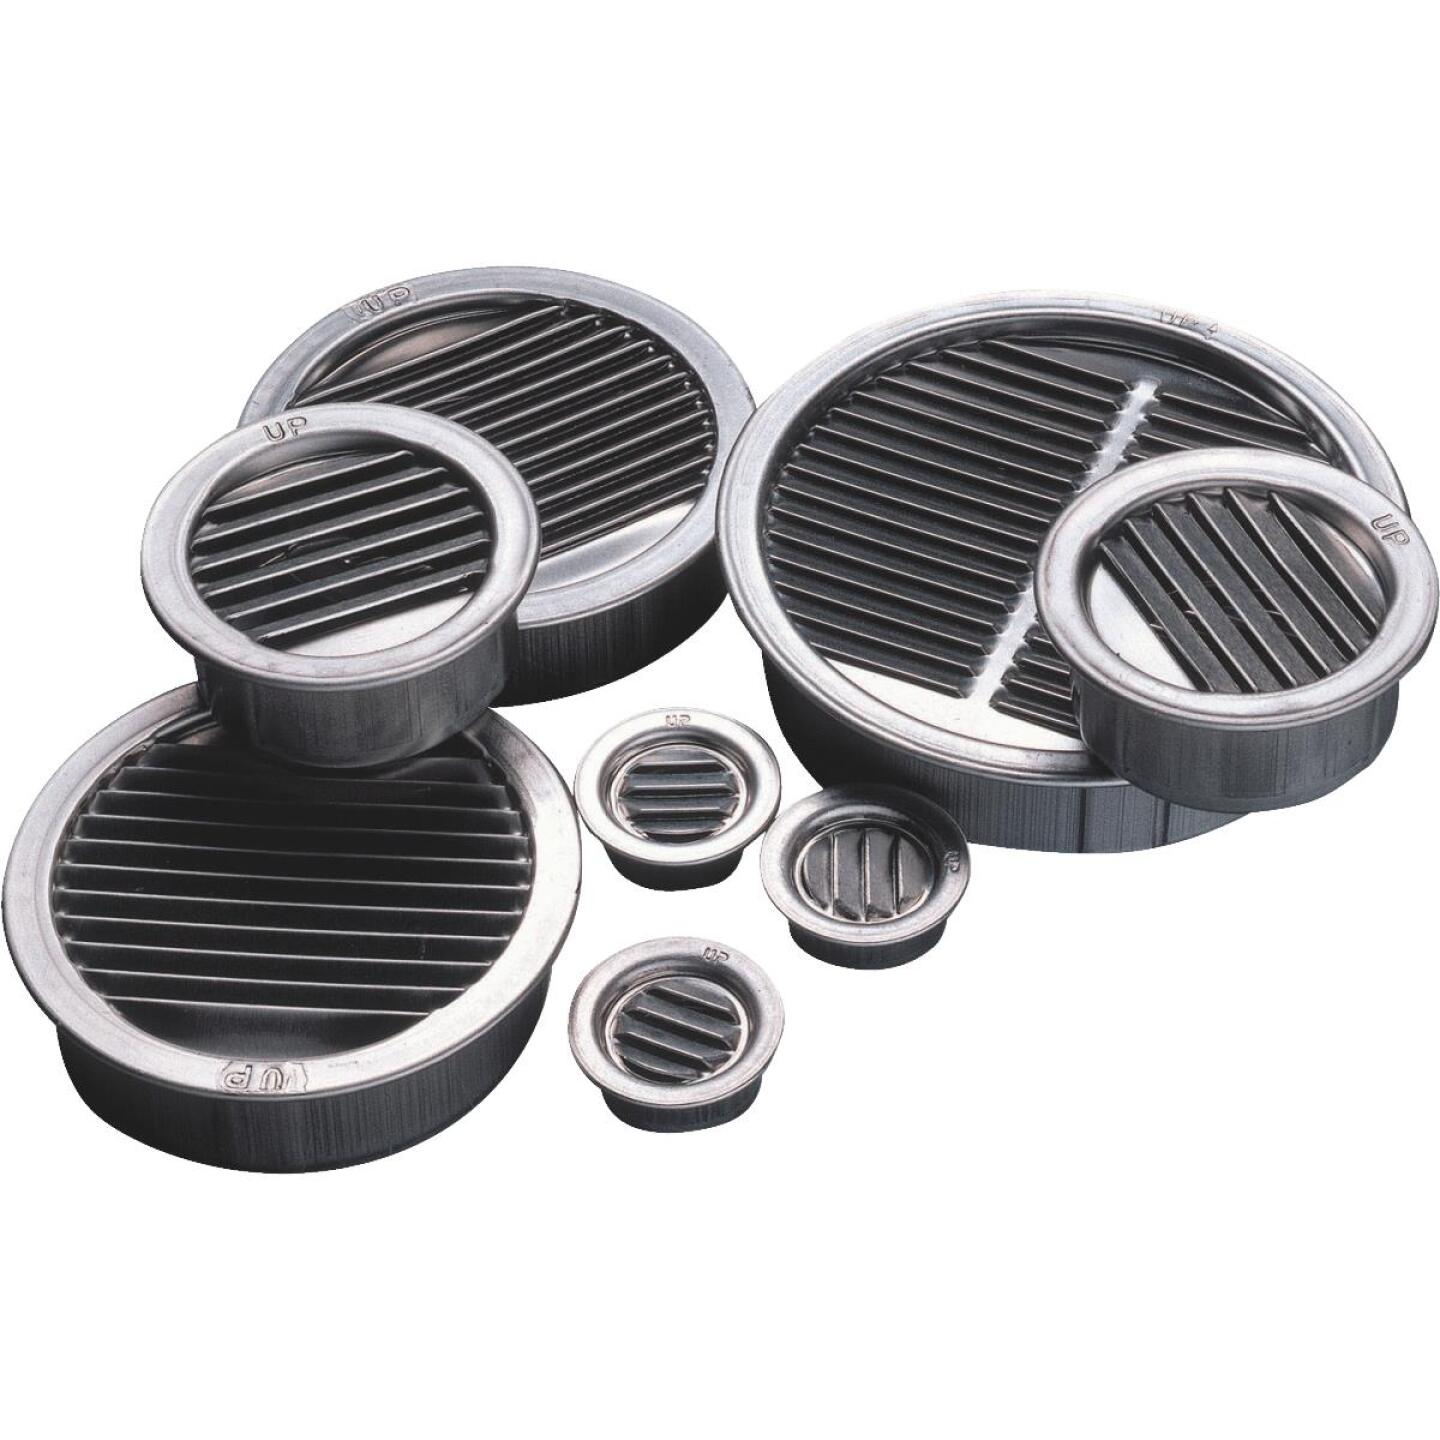 Air Vent 3 In. Aluminum Mini Louver (6 Count) Image 2